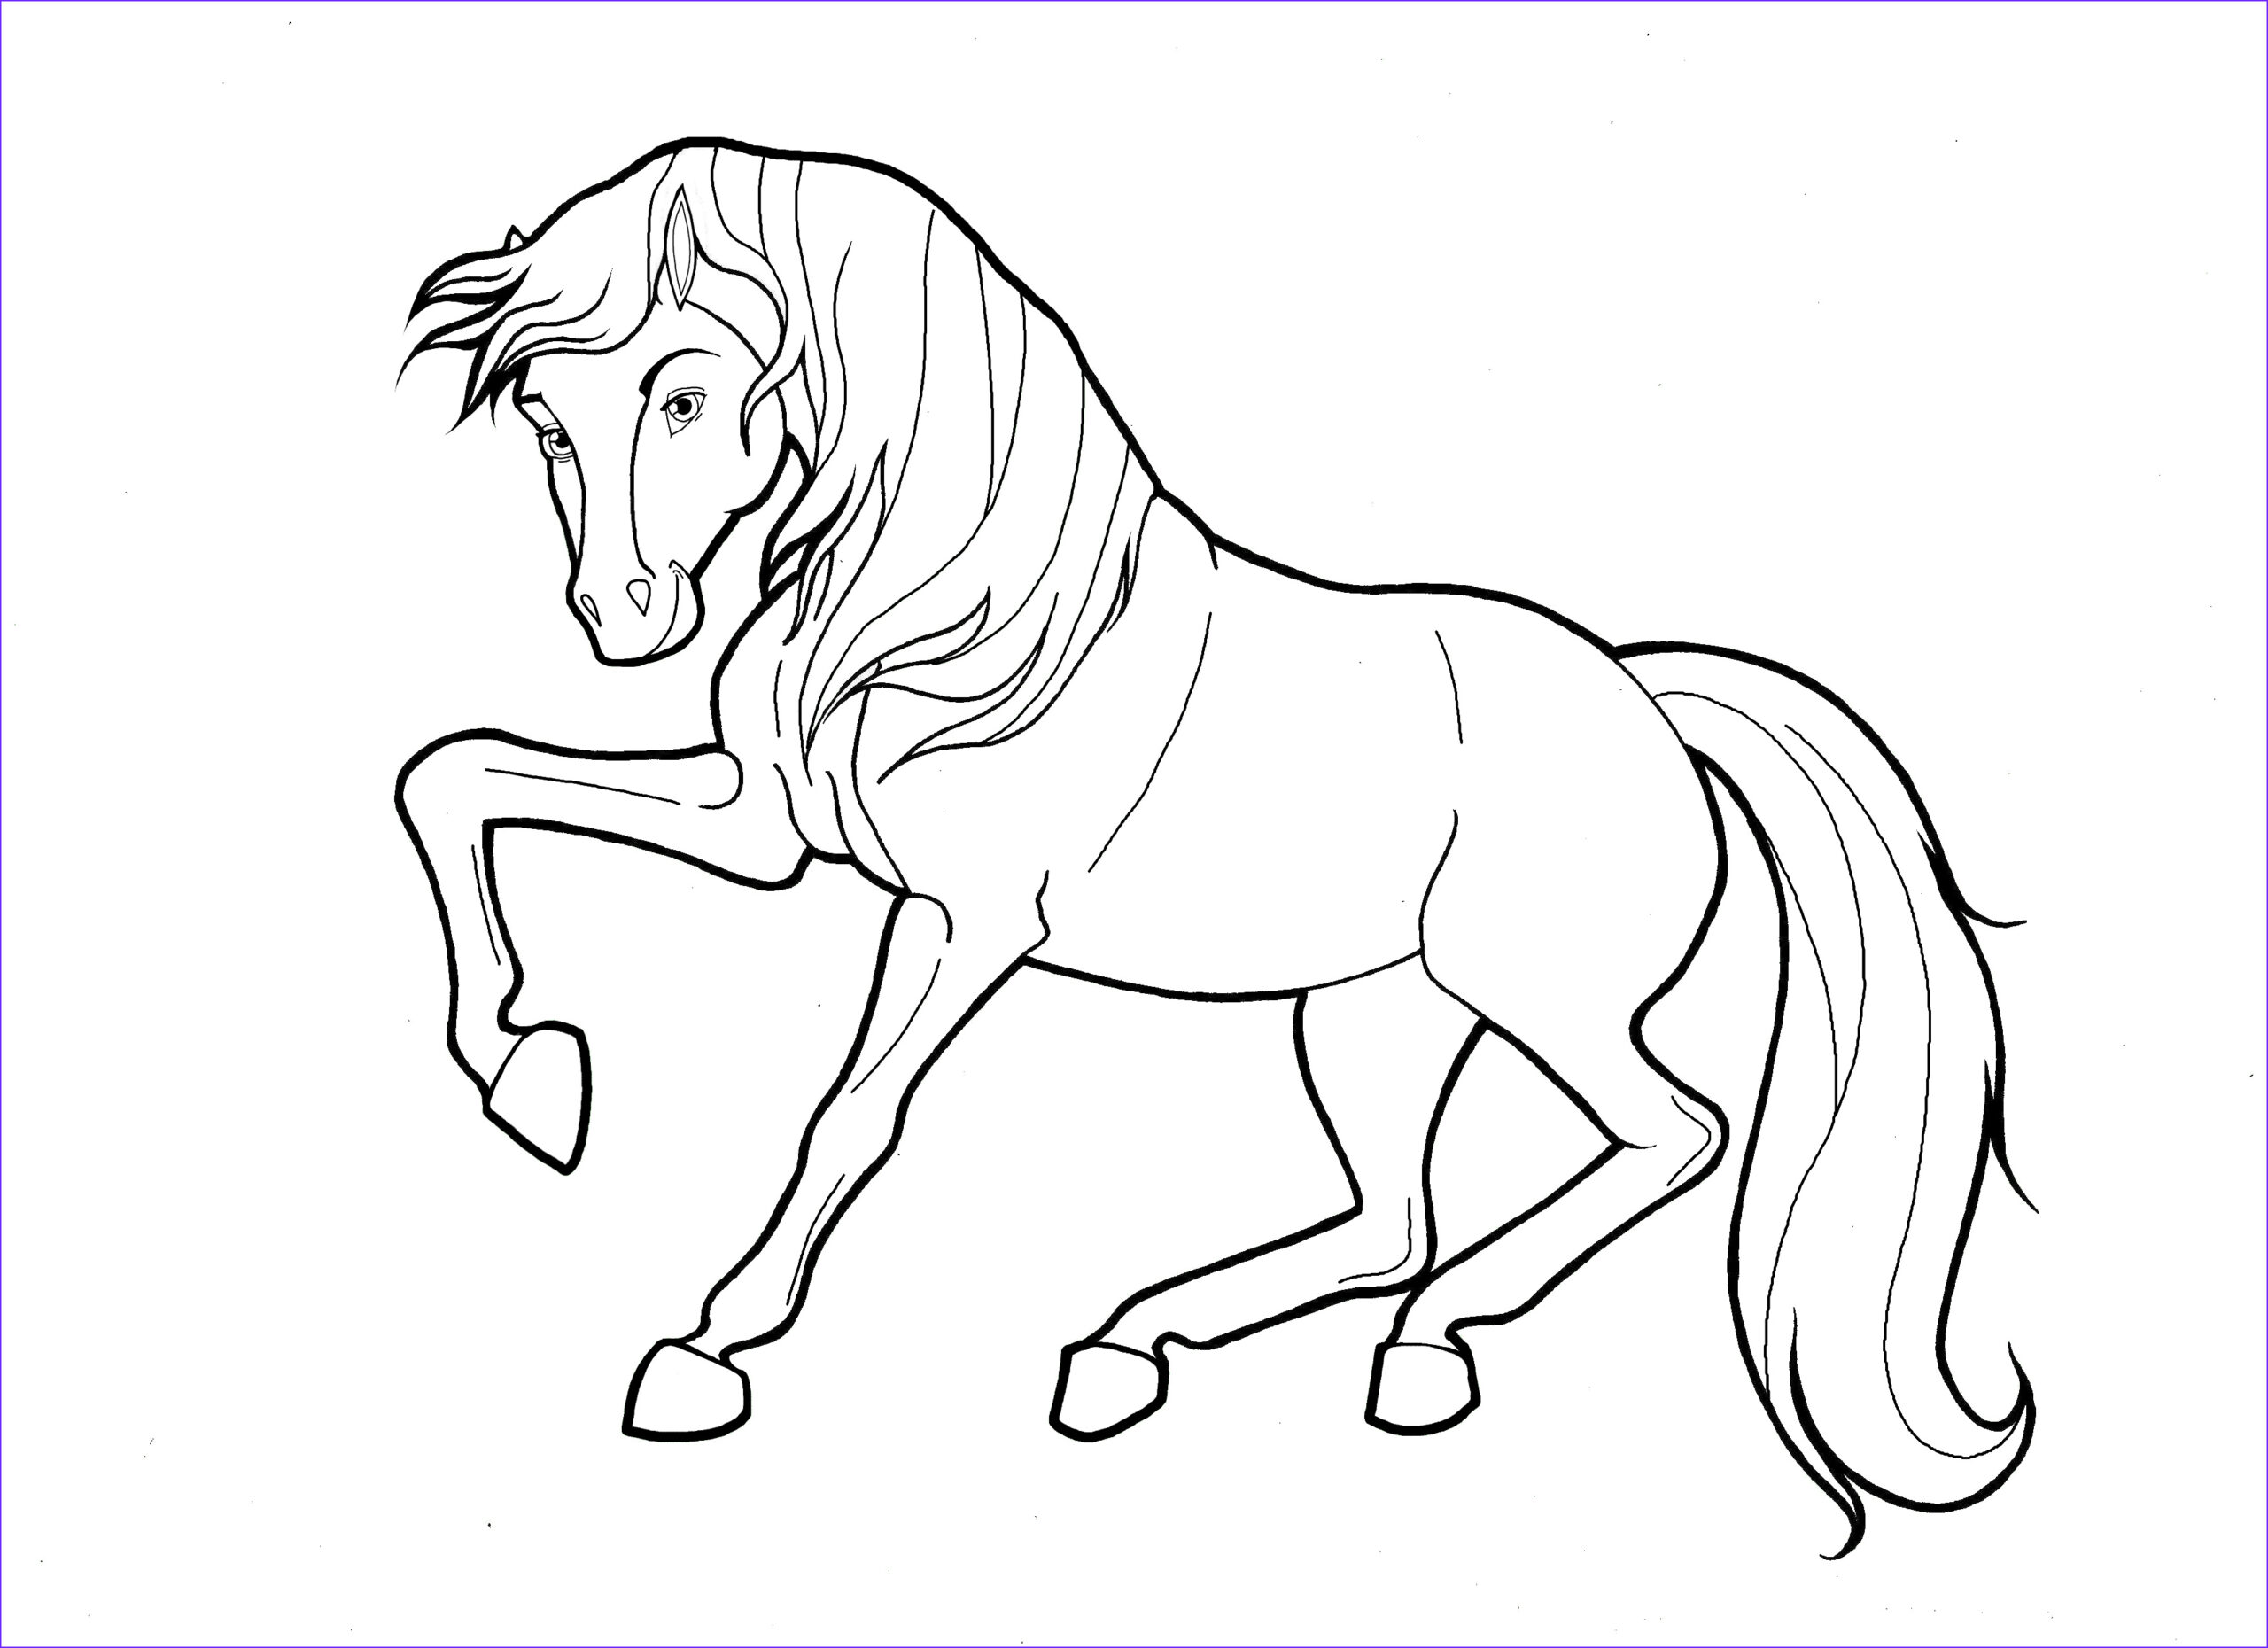 Horse Coloring Pages Best Of Image Coloring Pages Horses Printable